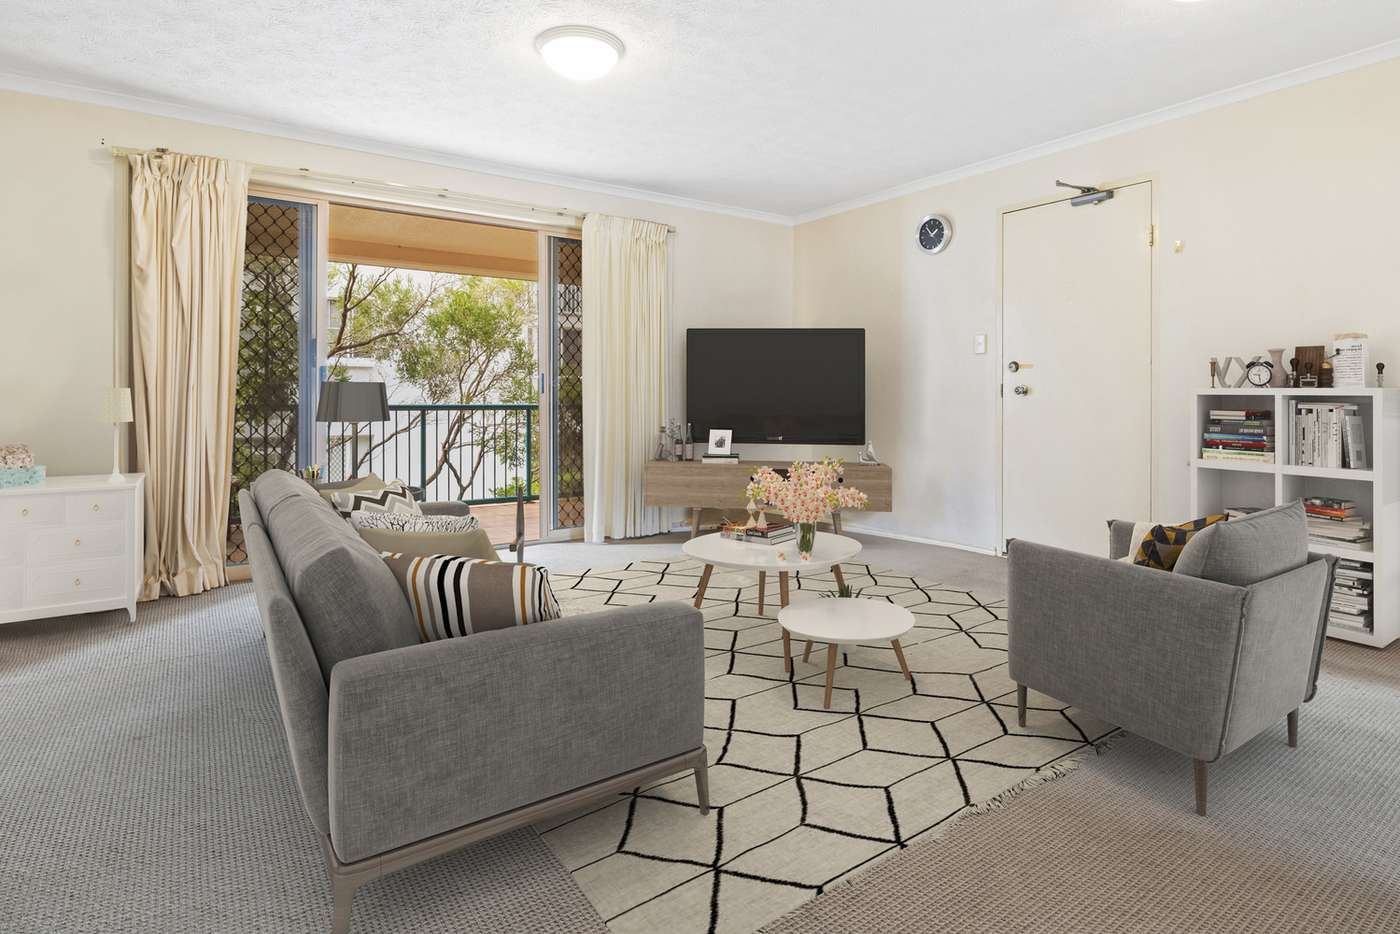 Main view of Homely apartment listing, 8/47 Bauer Street, Southport QLD 4215